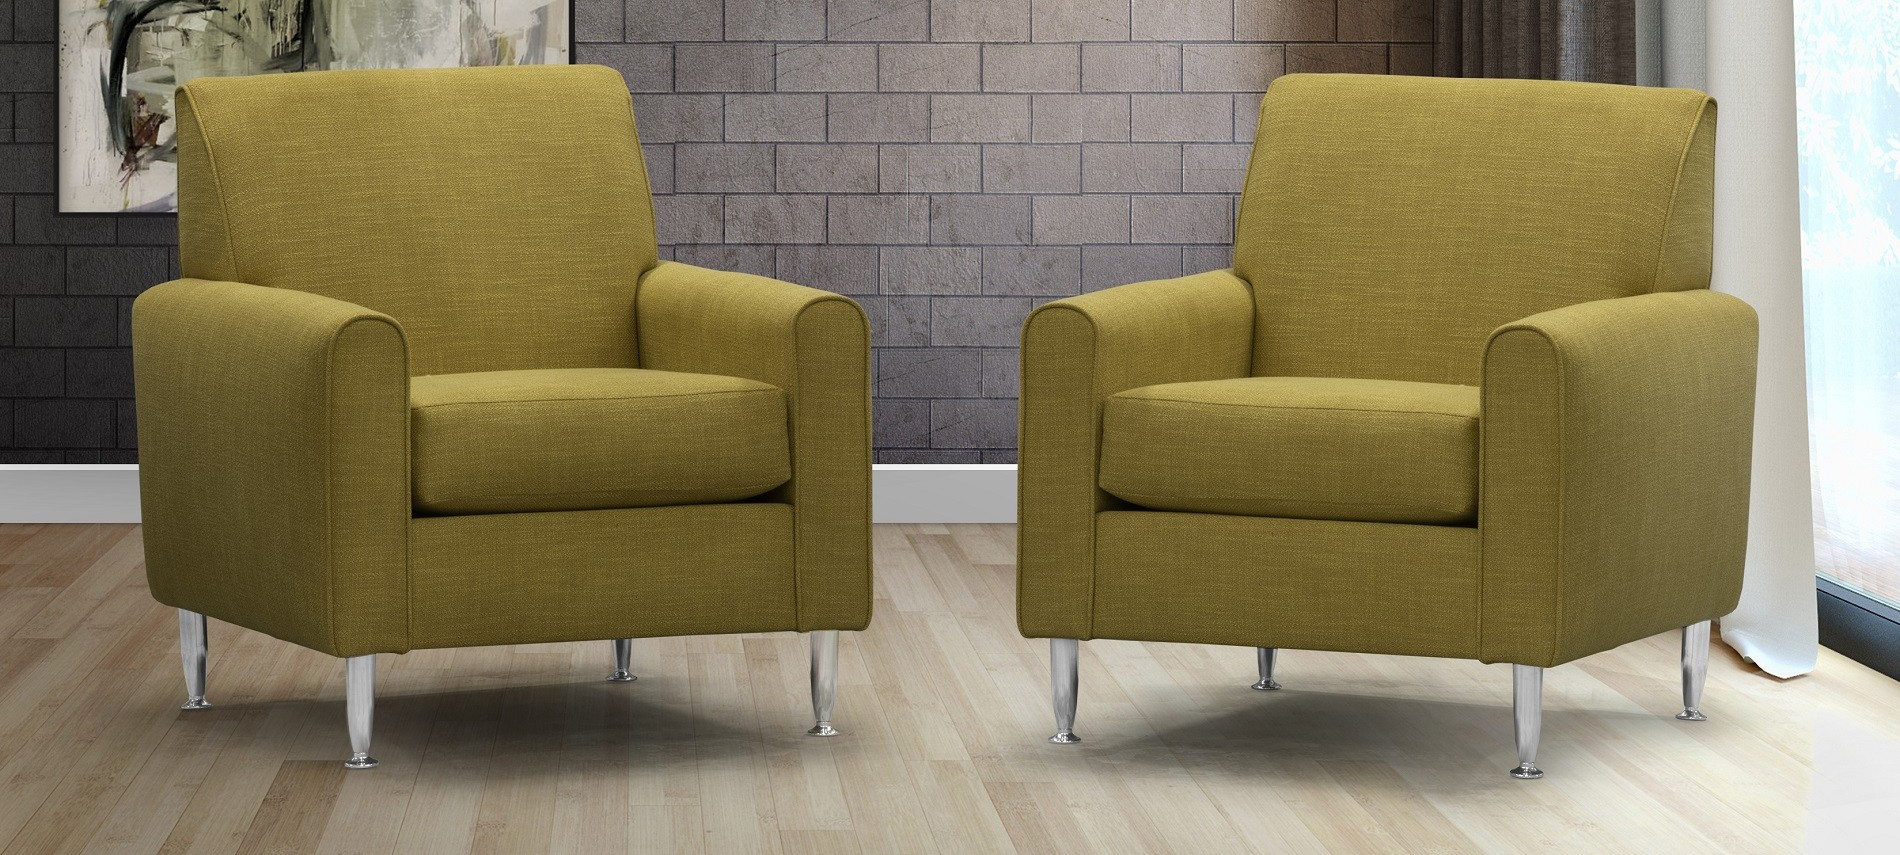 Leon Accent Chair 1900 x 855